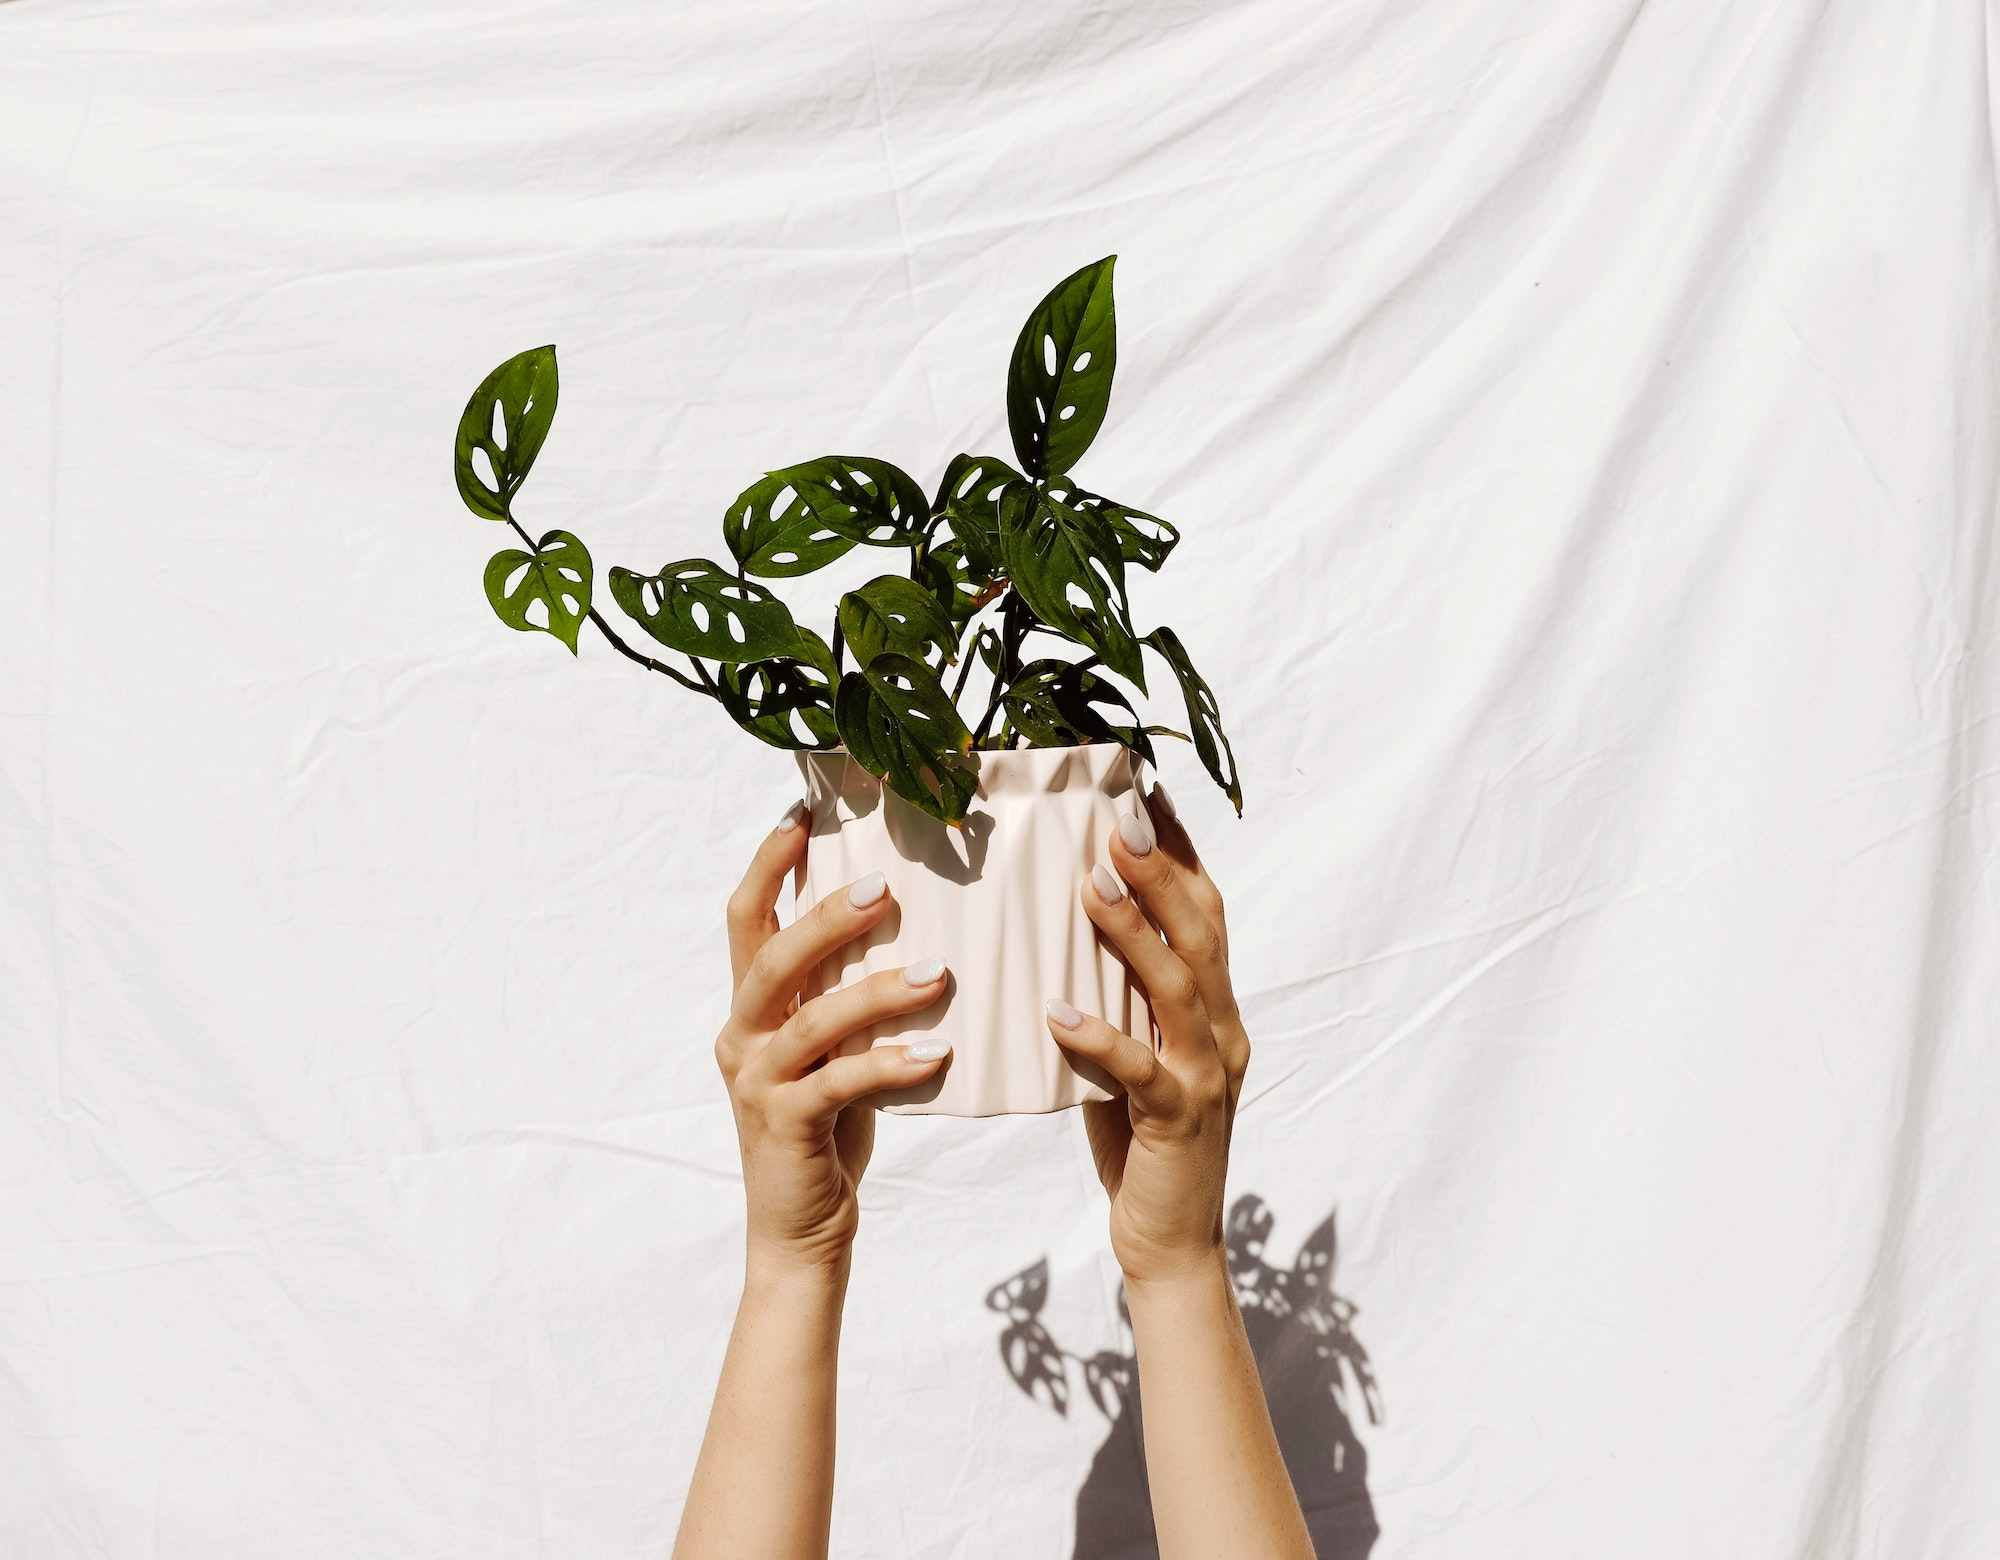 Do something different this Mother's Day by sending her a plant instead of flowers